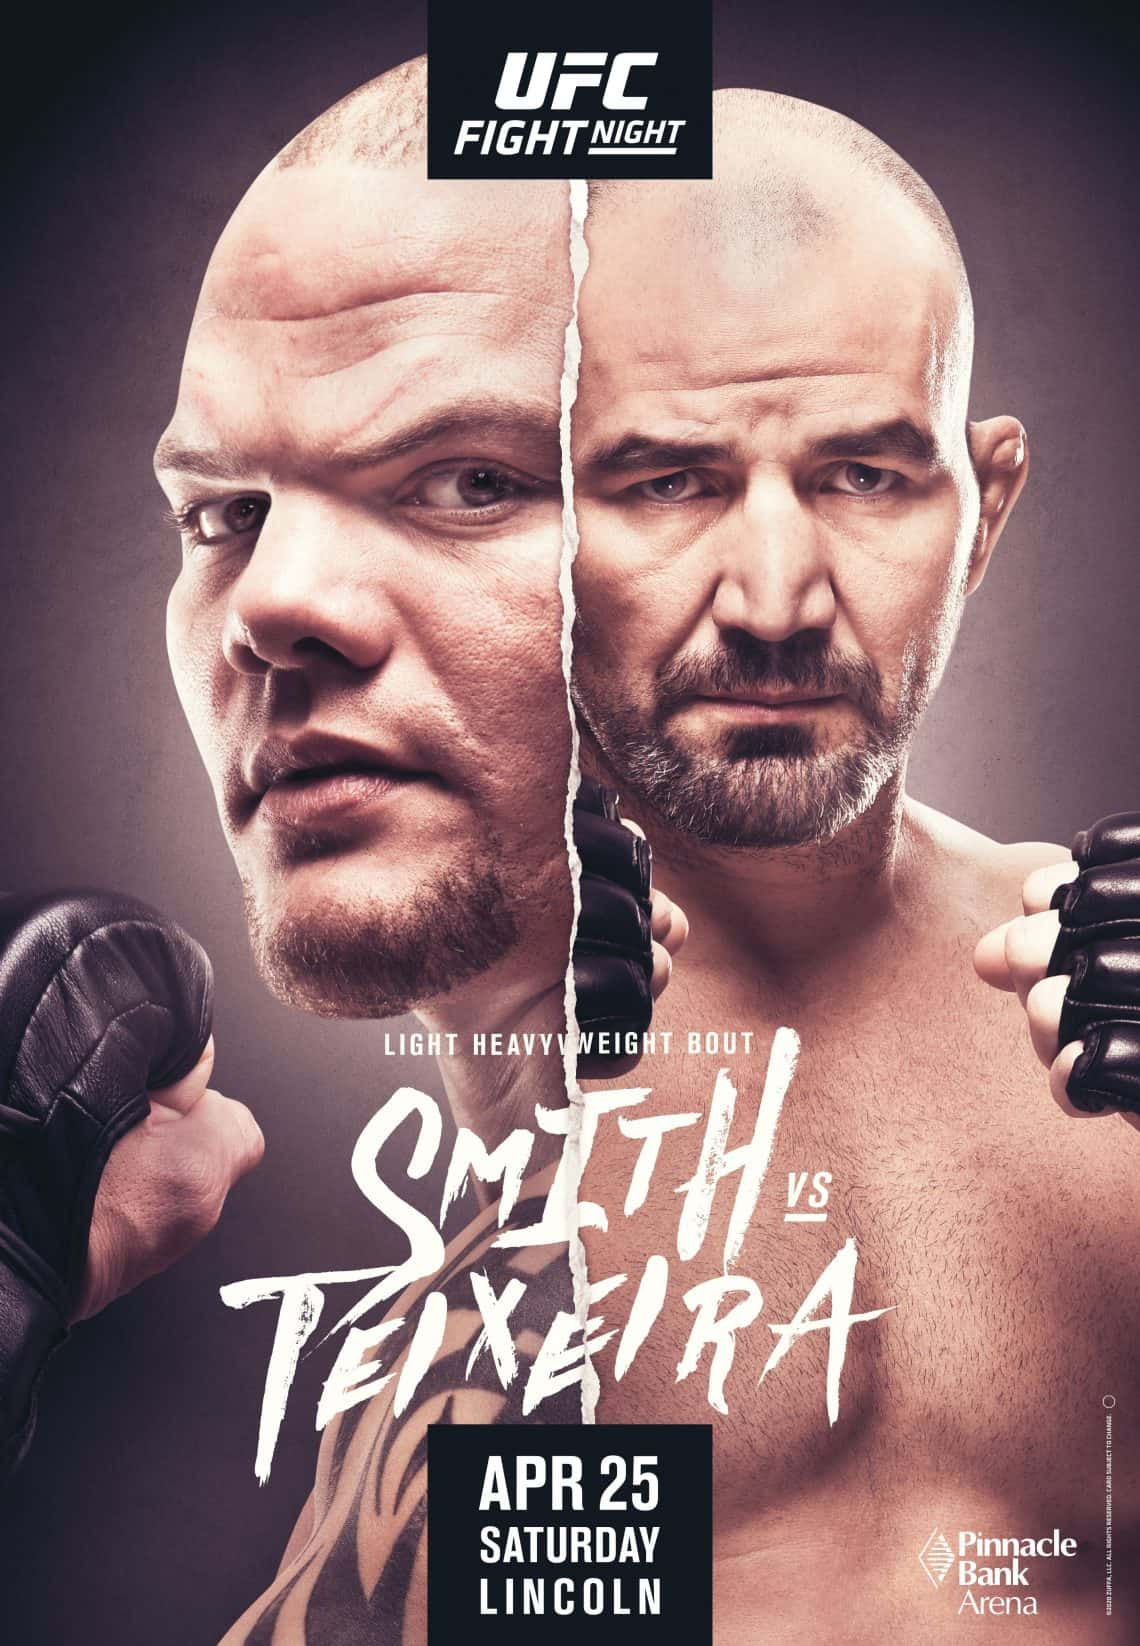 UFC Fight Night 173: Smith vs. Teixeira 1